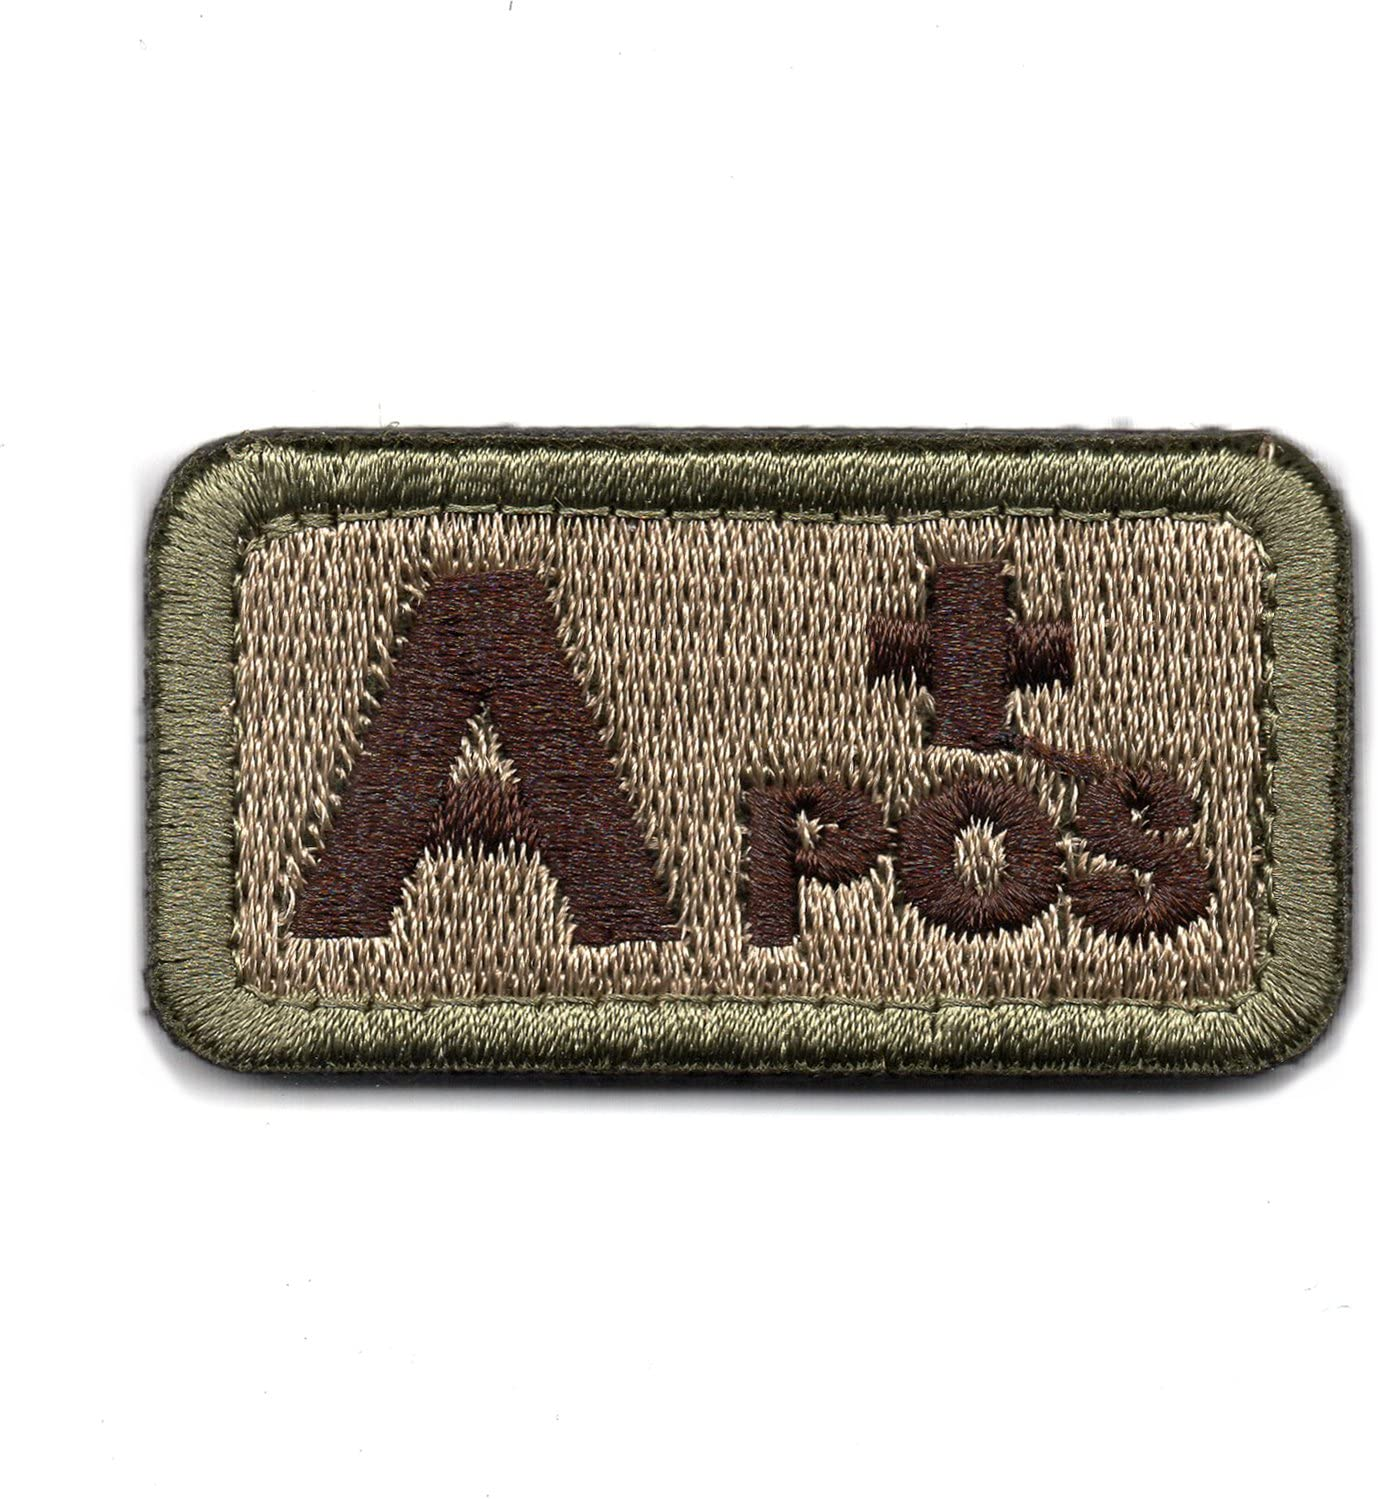 Wilde Passion Blood Type A Positive POS Badge - Embroidered Morale Military Patch (Coyote Brown A)